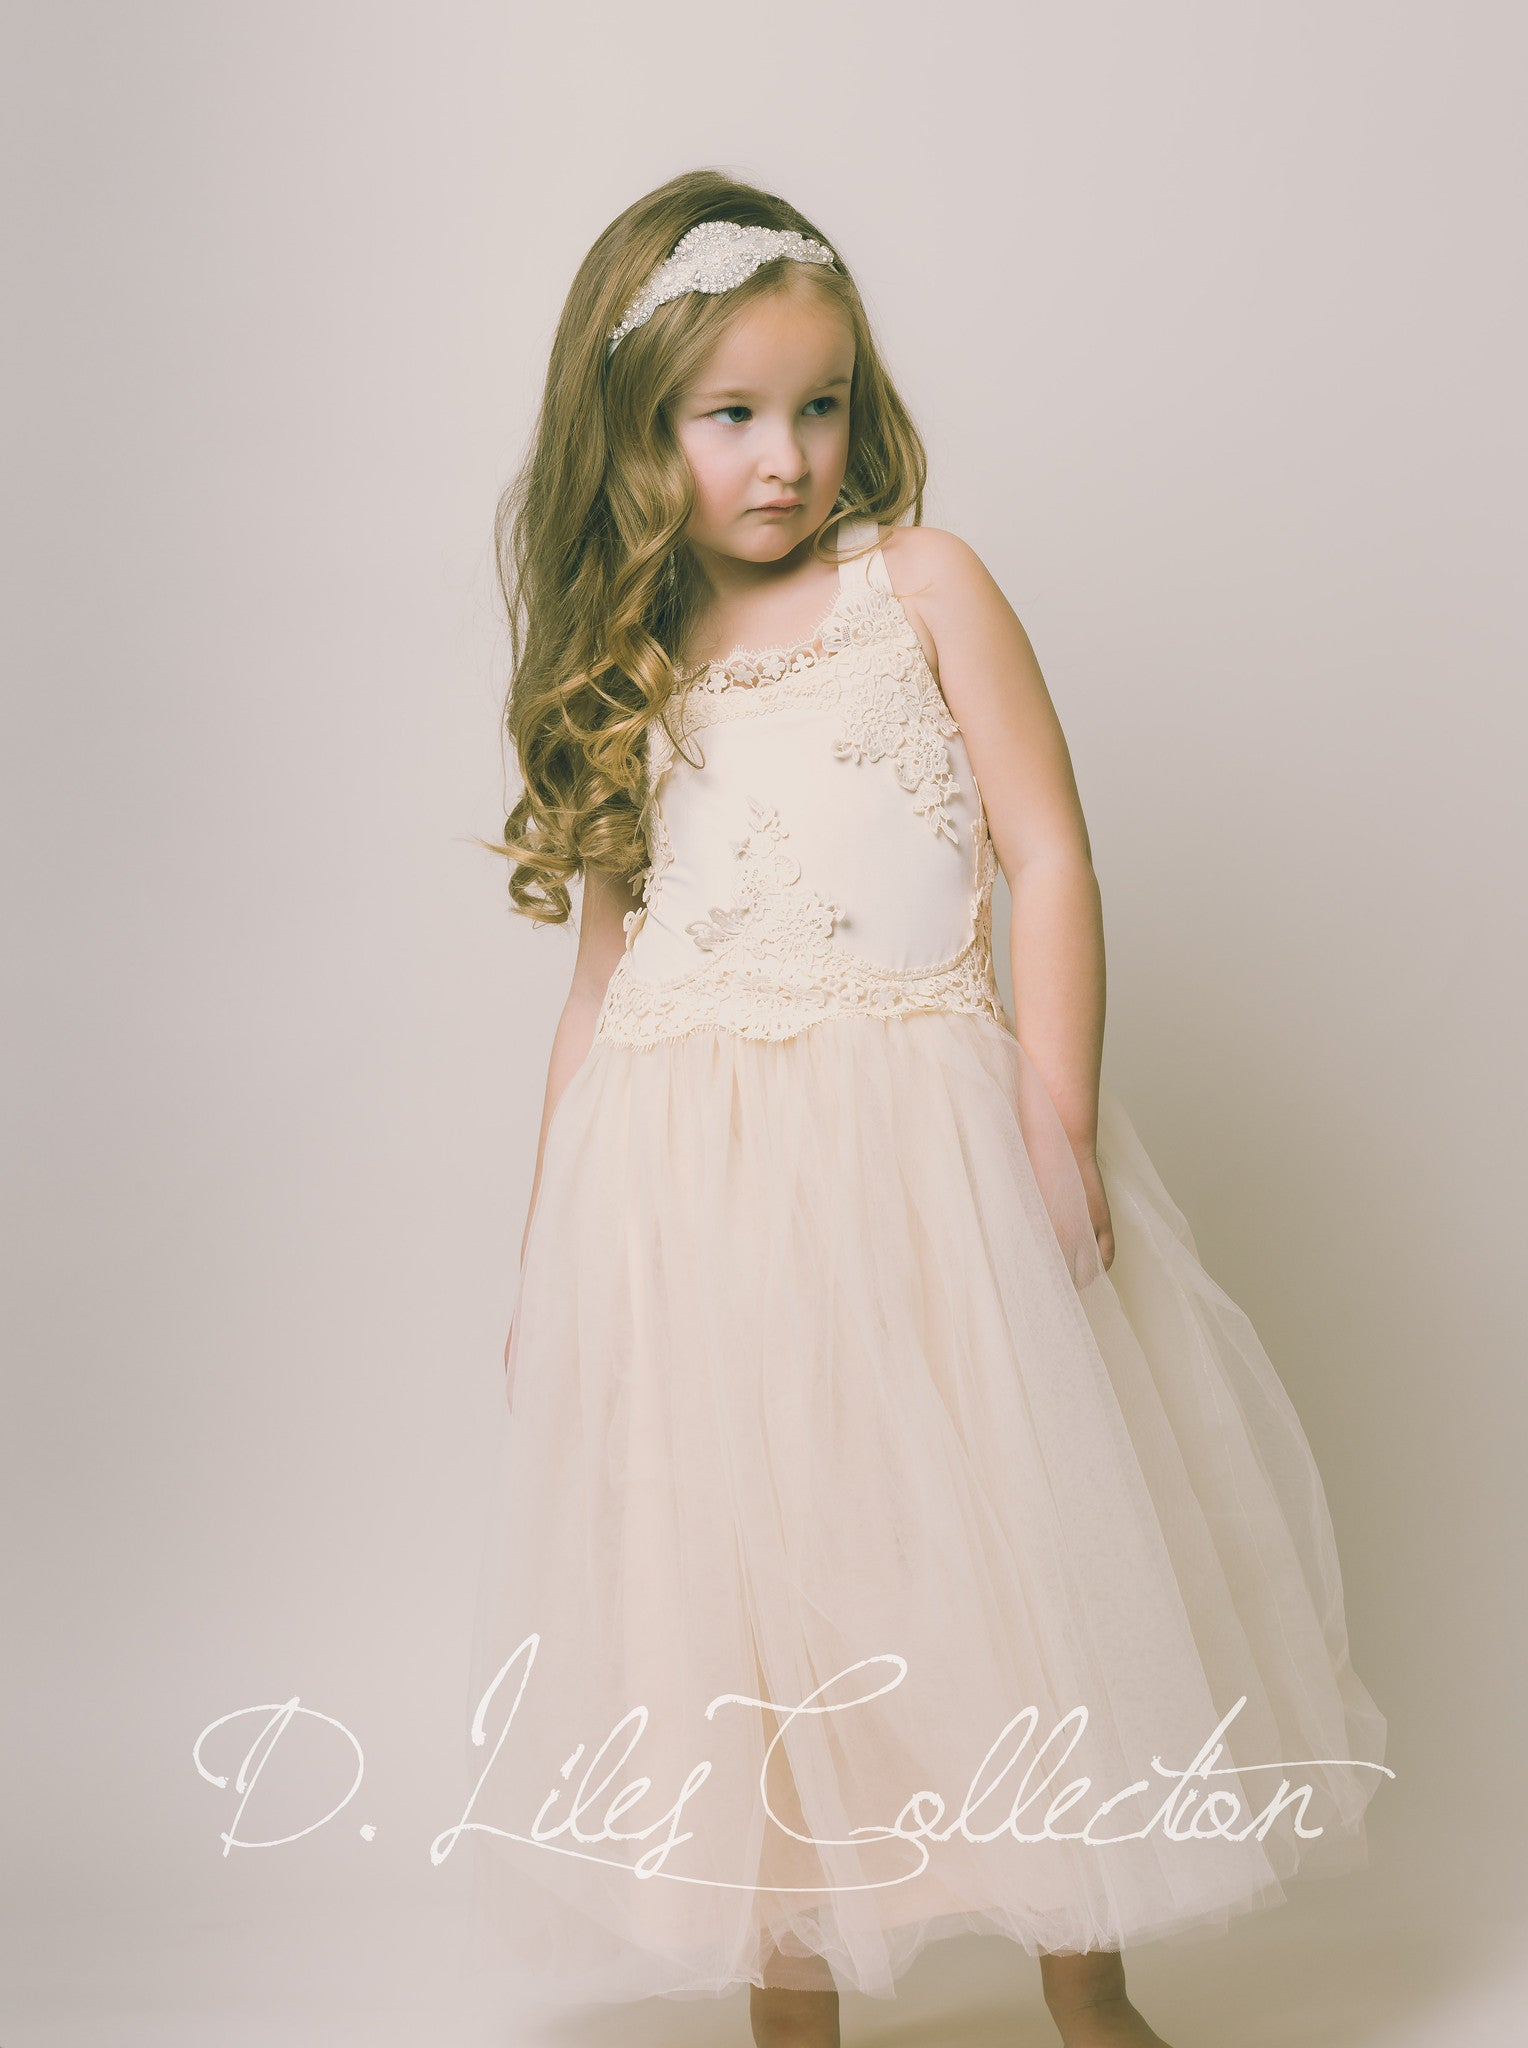 Rustic Vintage Lace Evangeline Flower Girl Dress D Liles